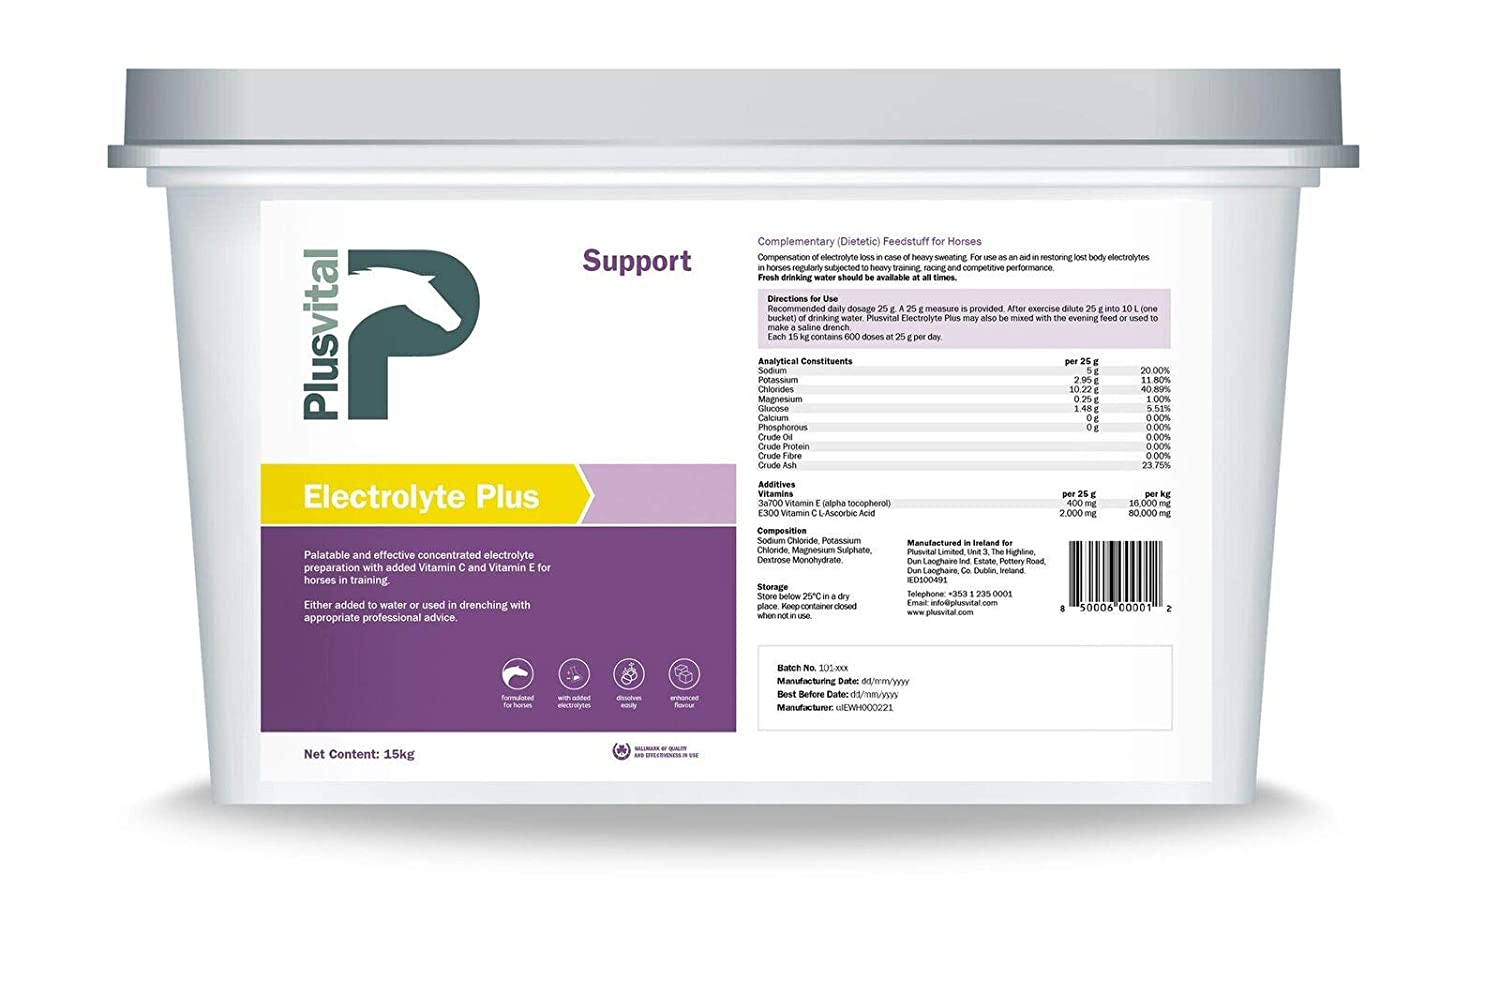 Plusvital Electrolyte Plus Nutritional Supplements, 15 kg, One Size